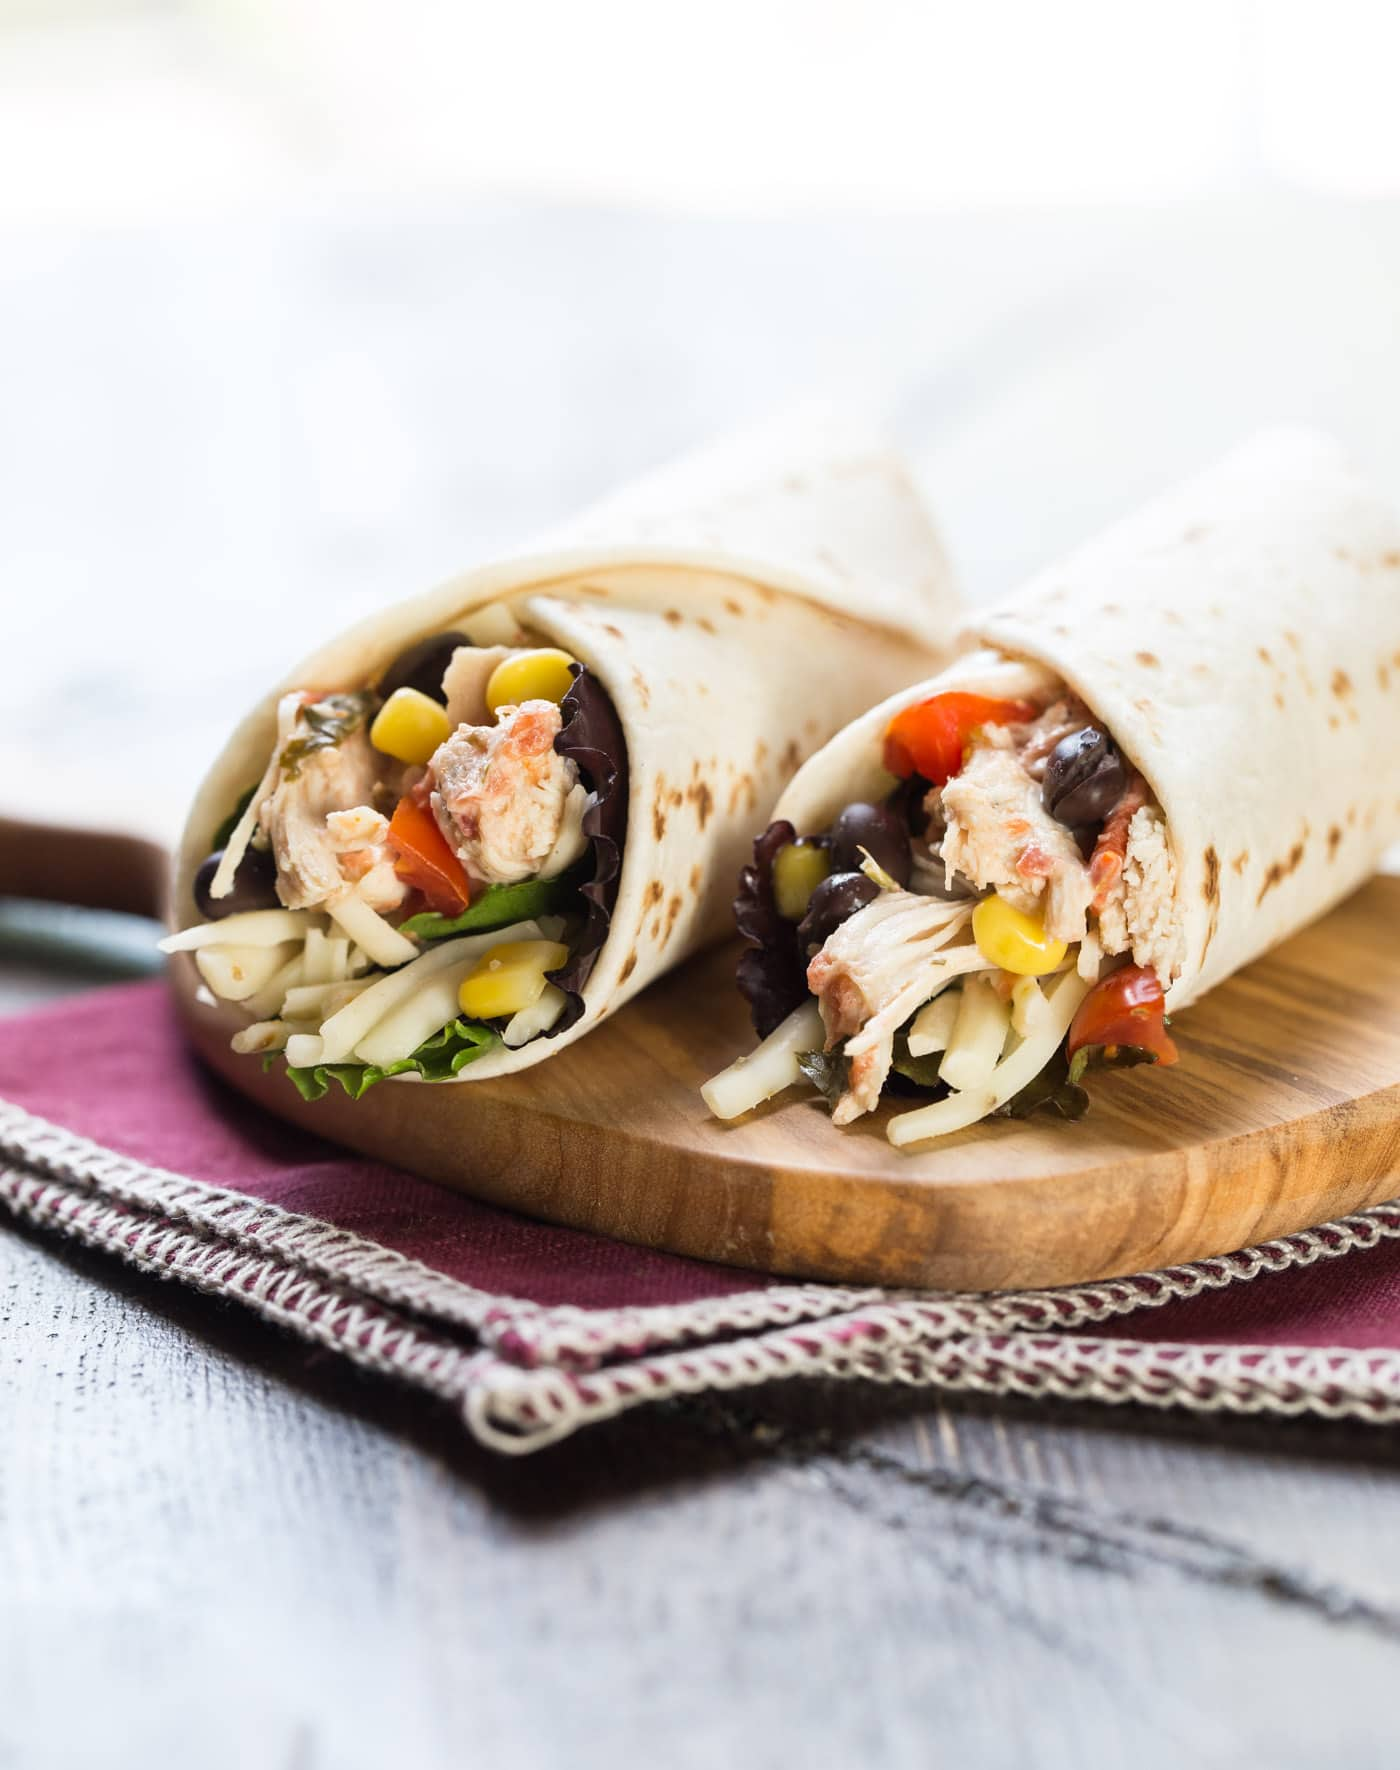 Spice up your normal lunch routine with this easy and delicious Southwest Chicken Wrap!